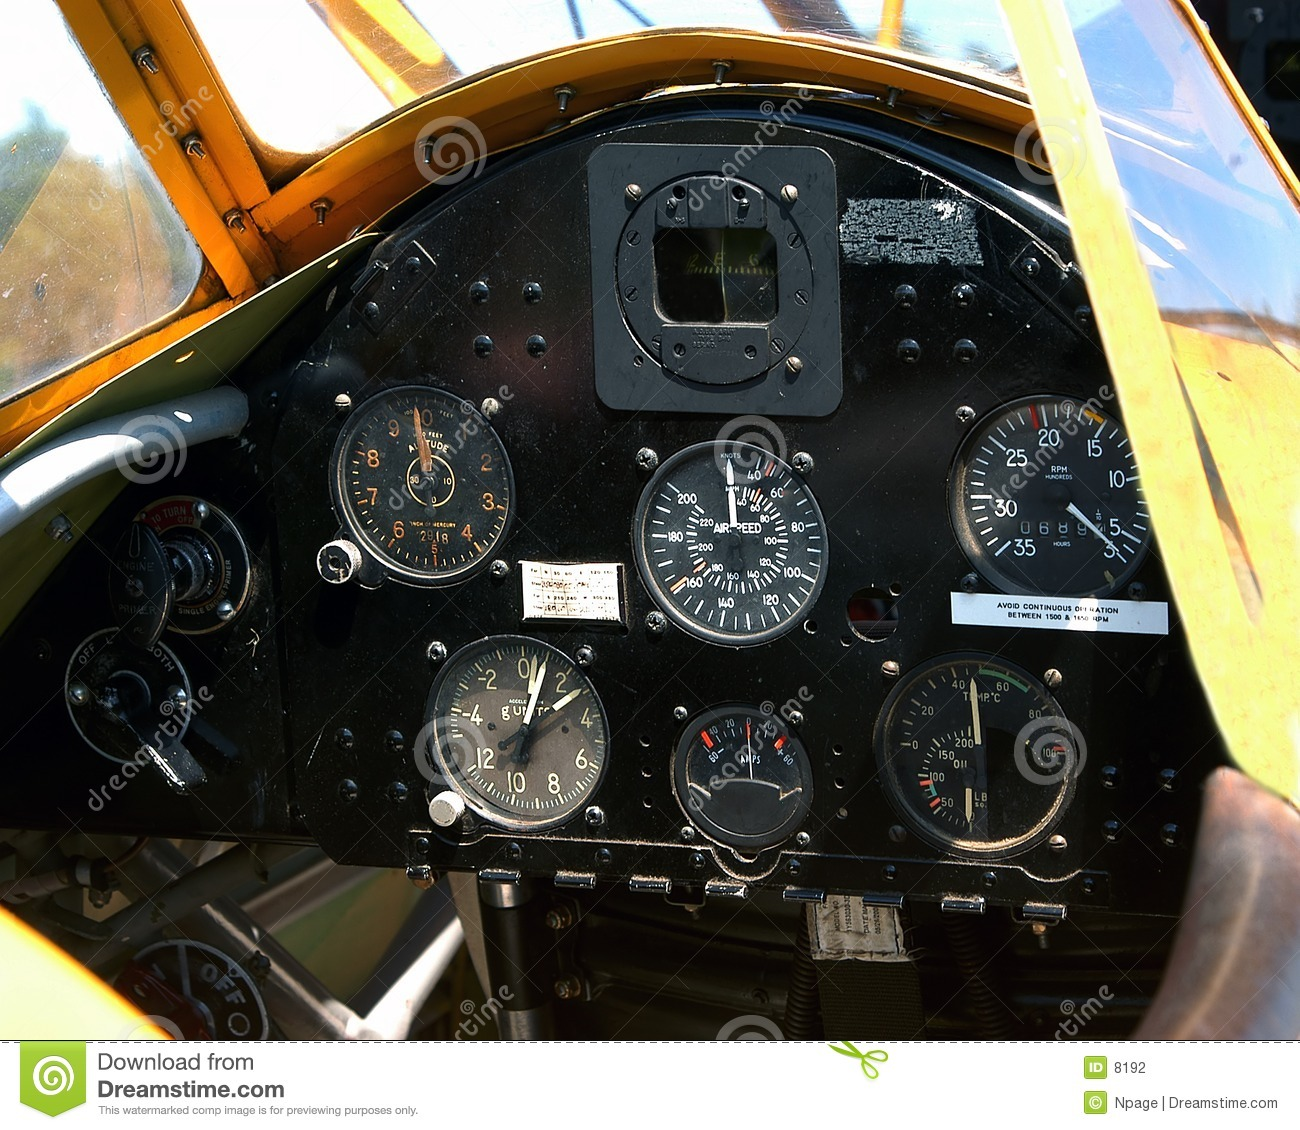 Flugzeuginstrument-Panel